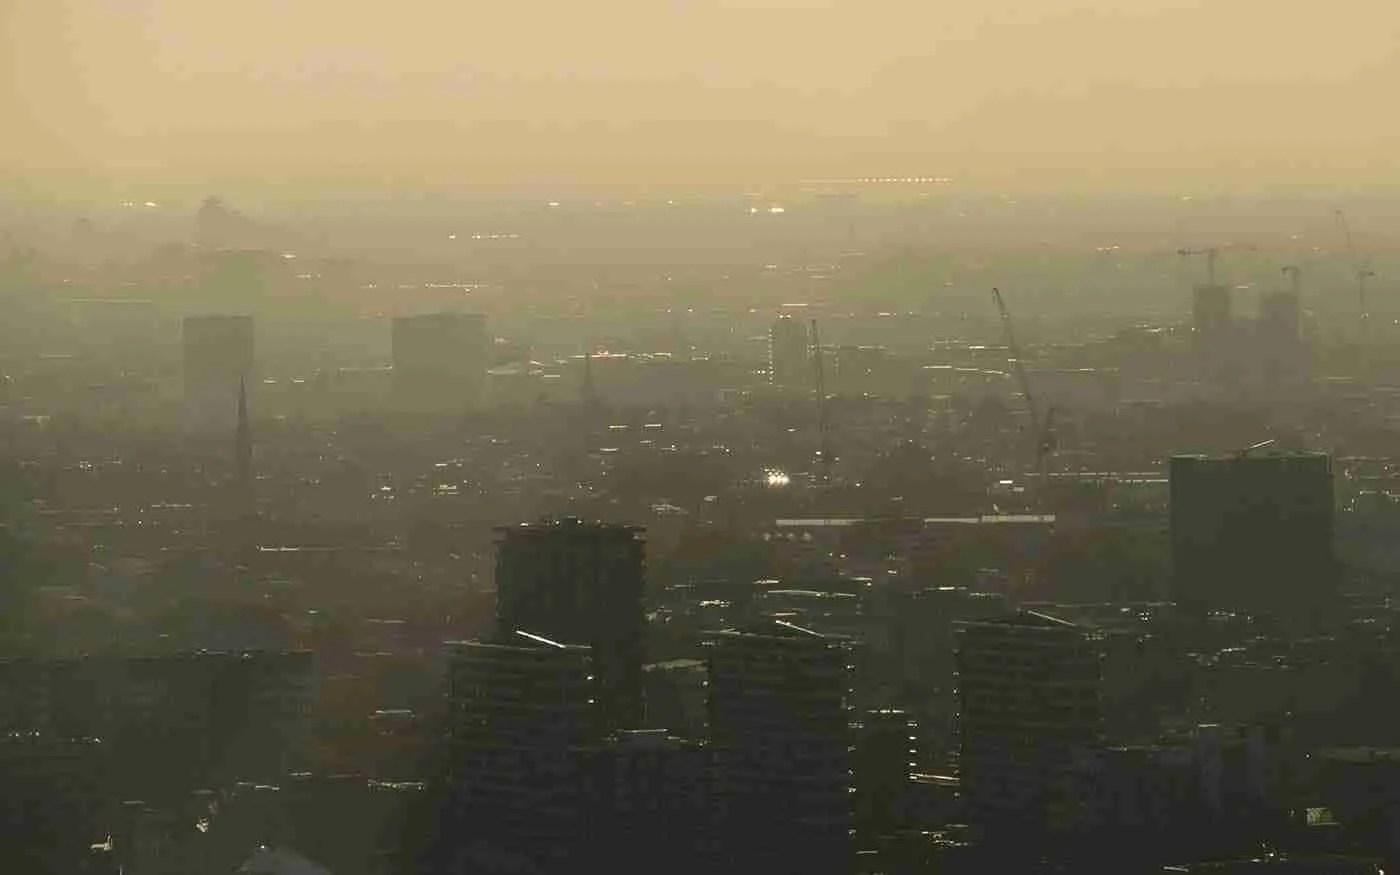 Hazy city scape caused by environmental racism – by Call Me Fred, Unsplash